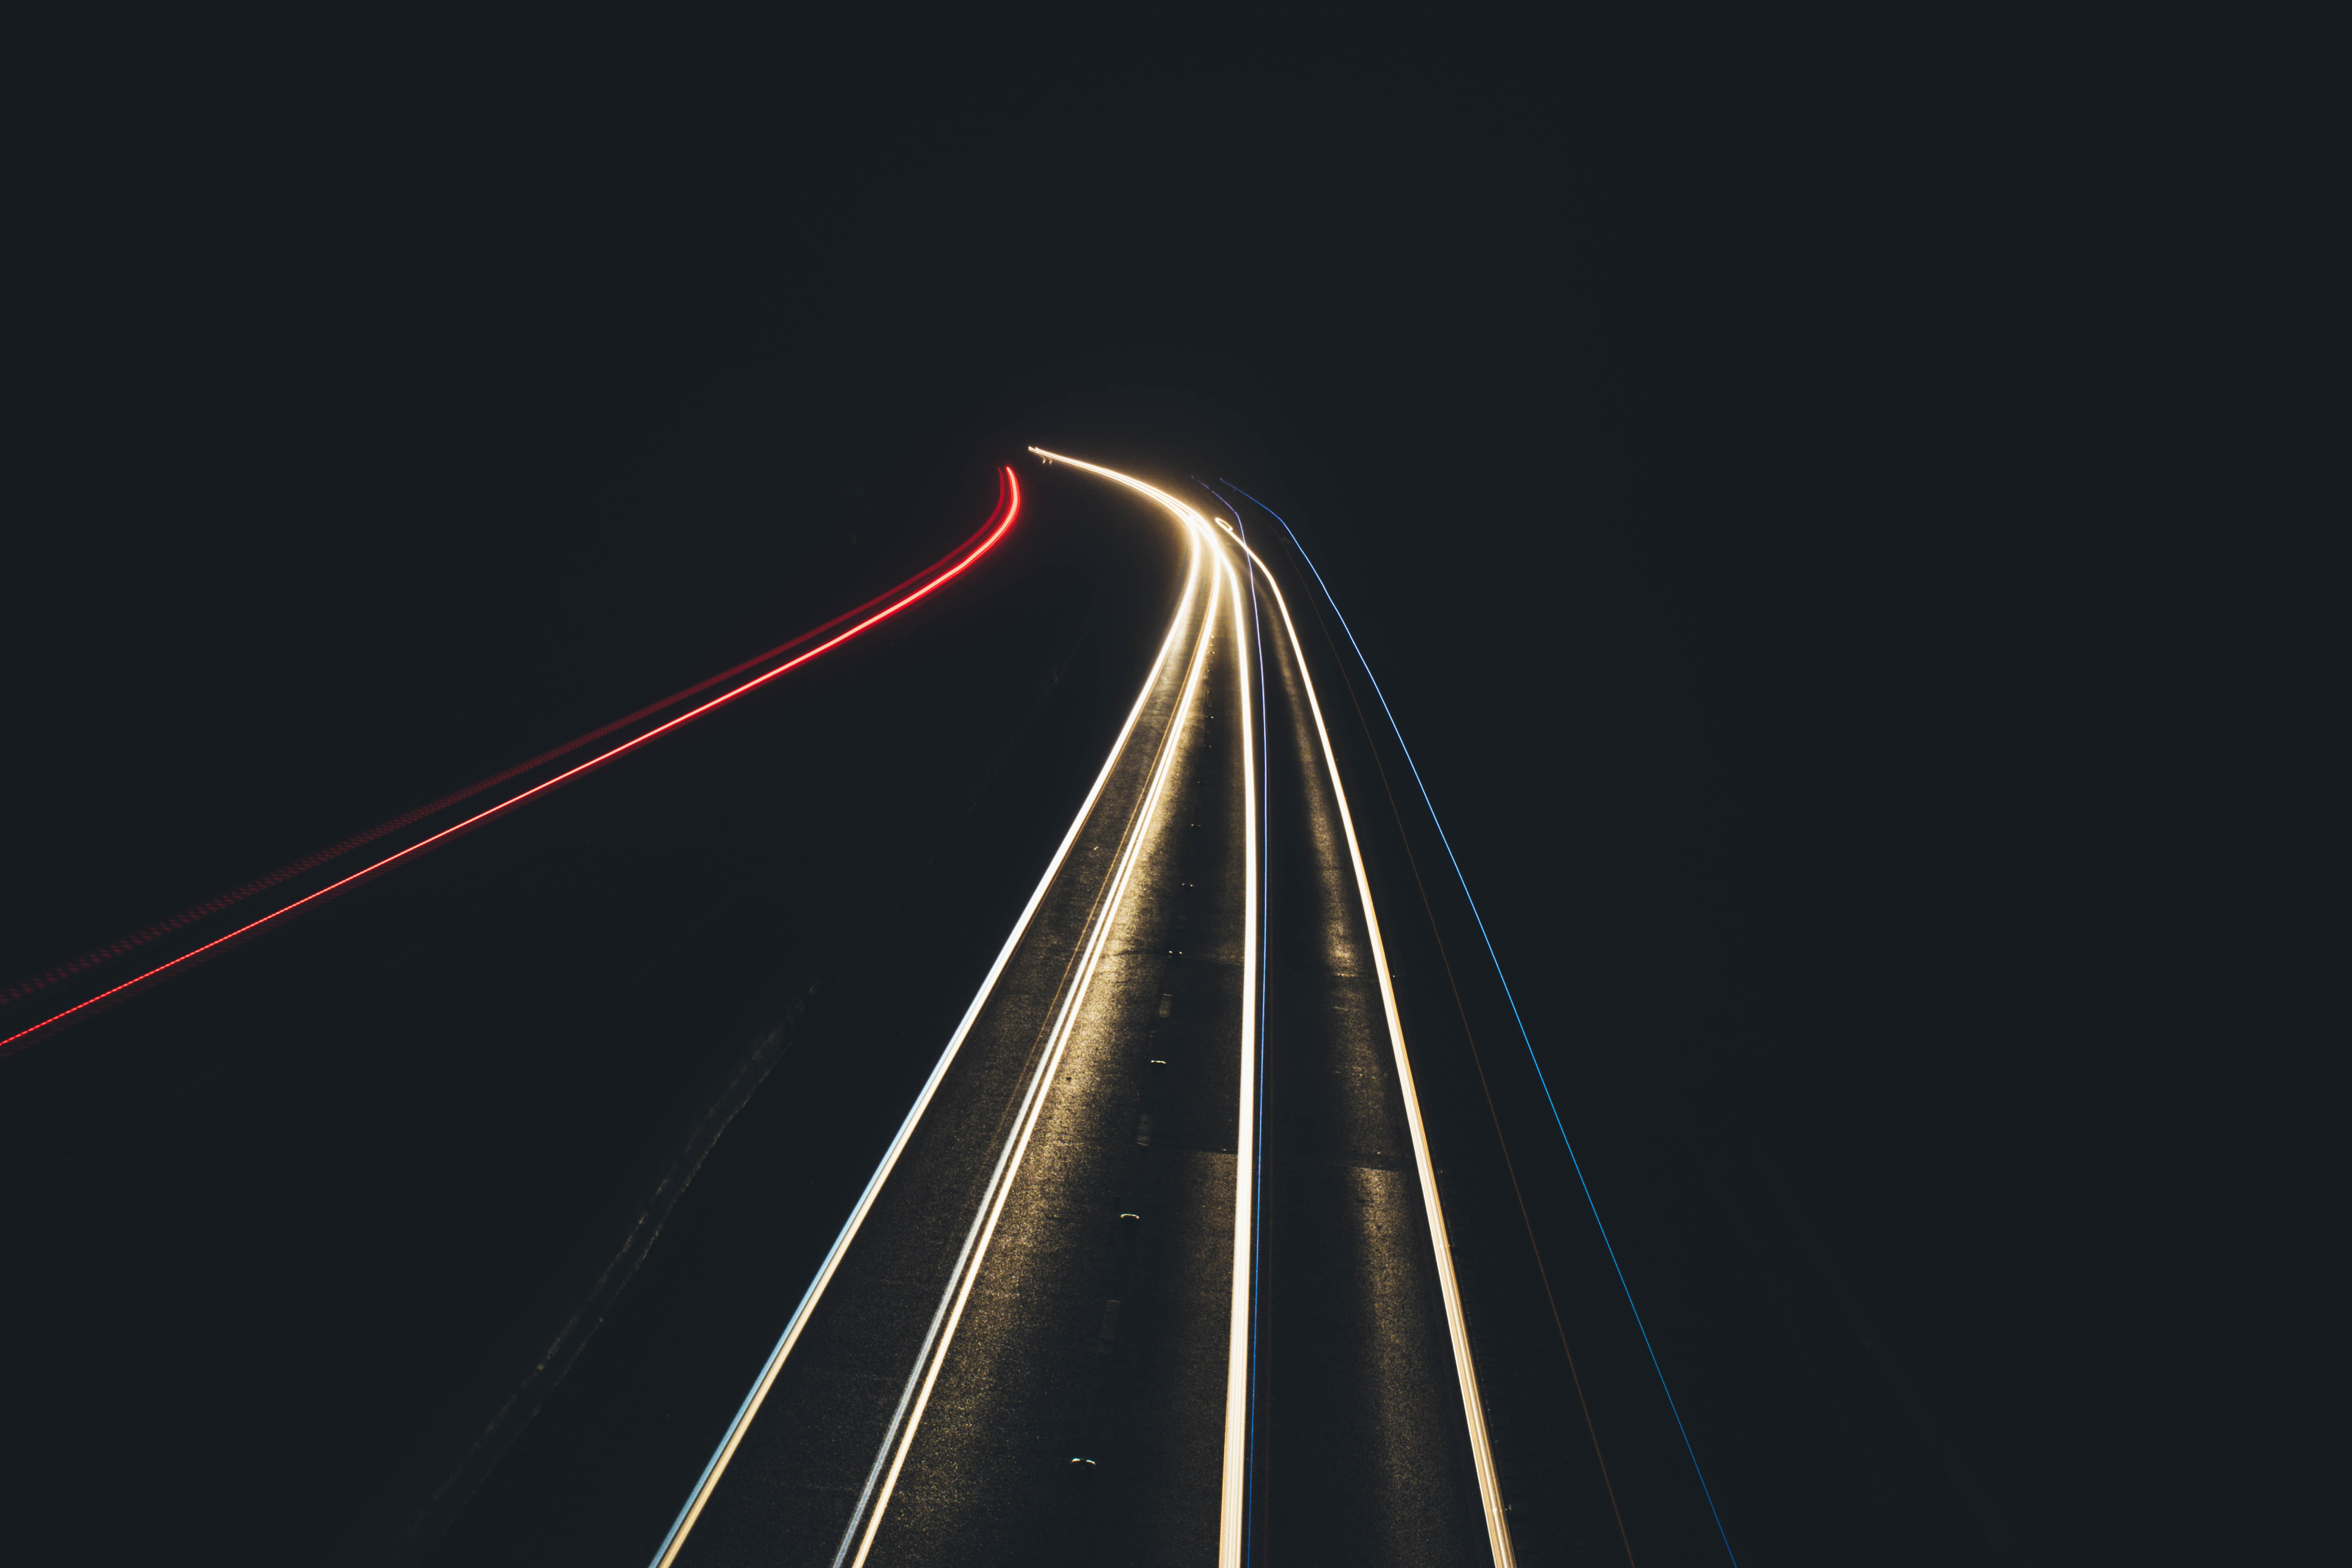 A long exposure shot of car lights glowing on a pitch black road in Scunthorpe